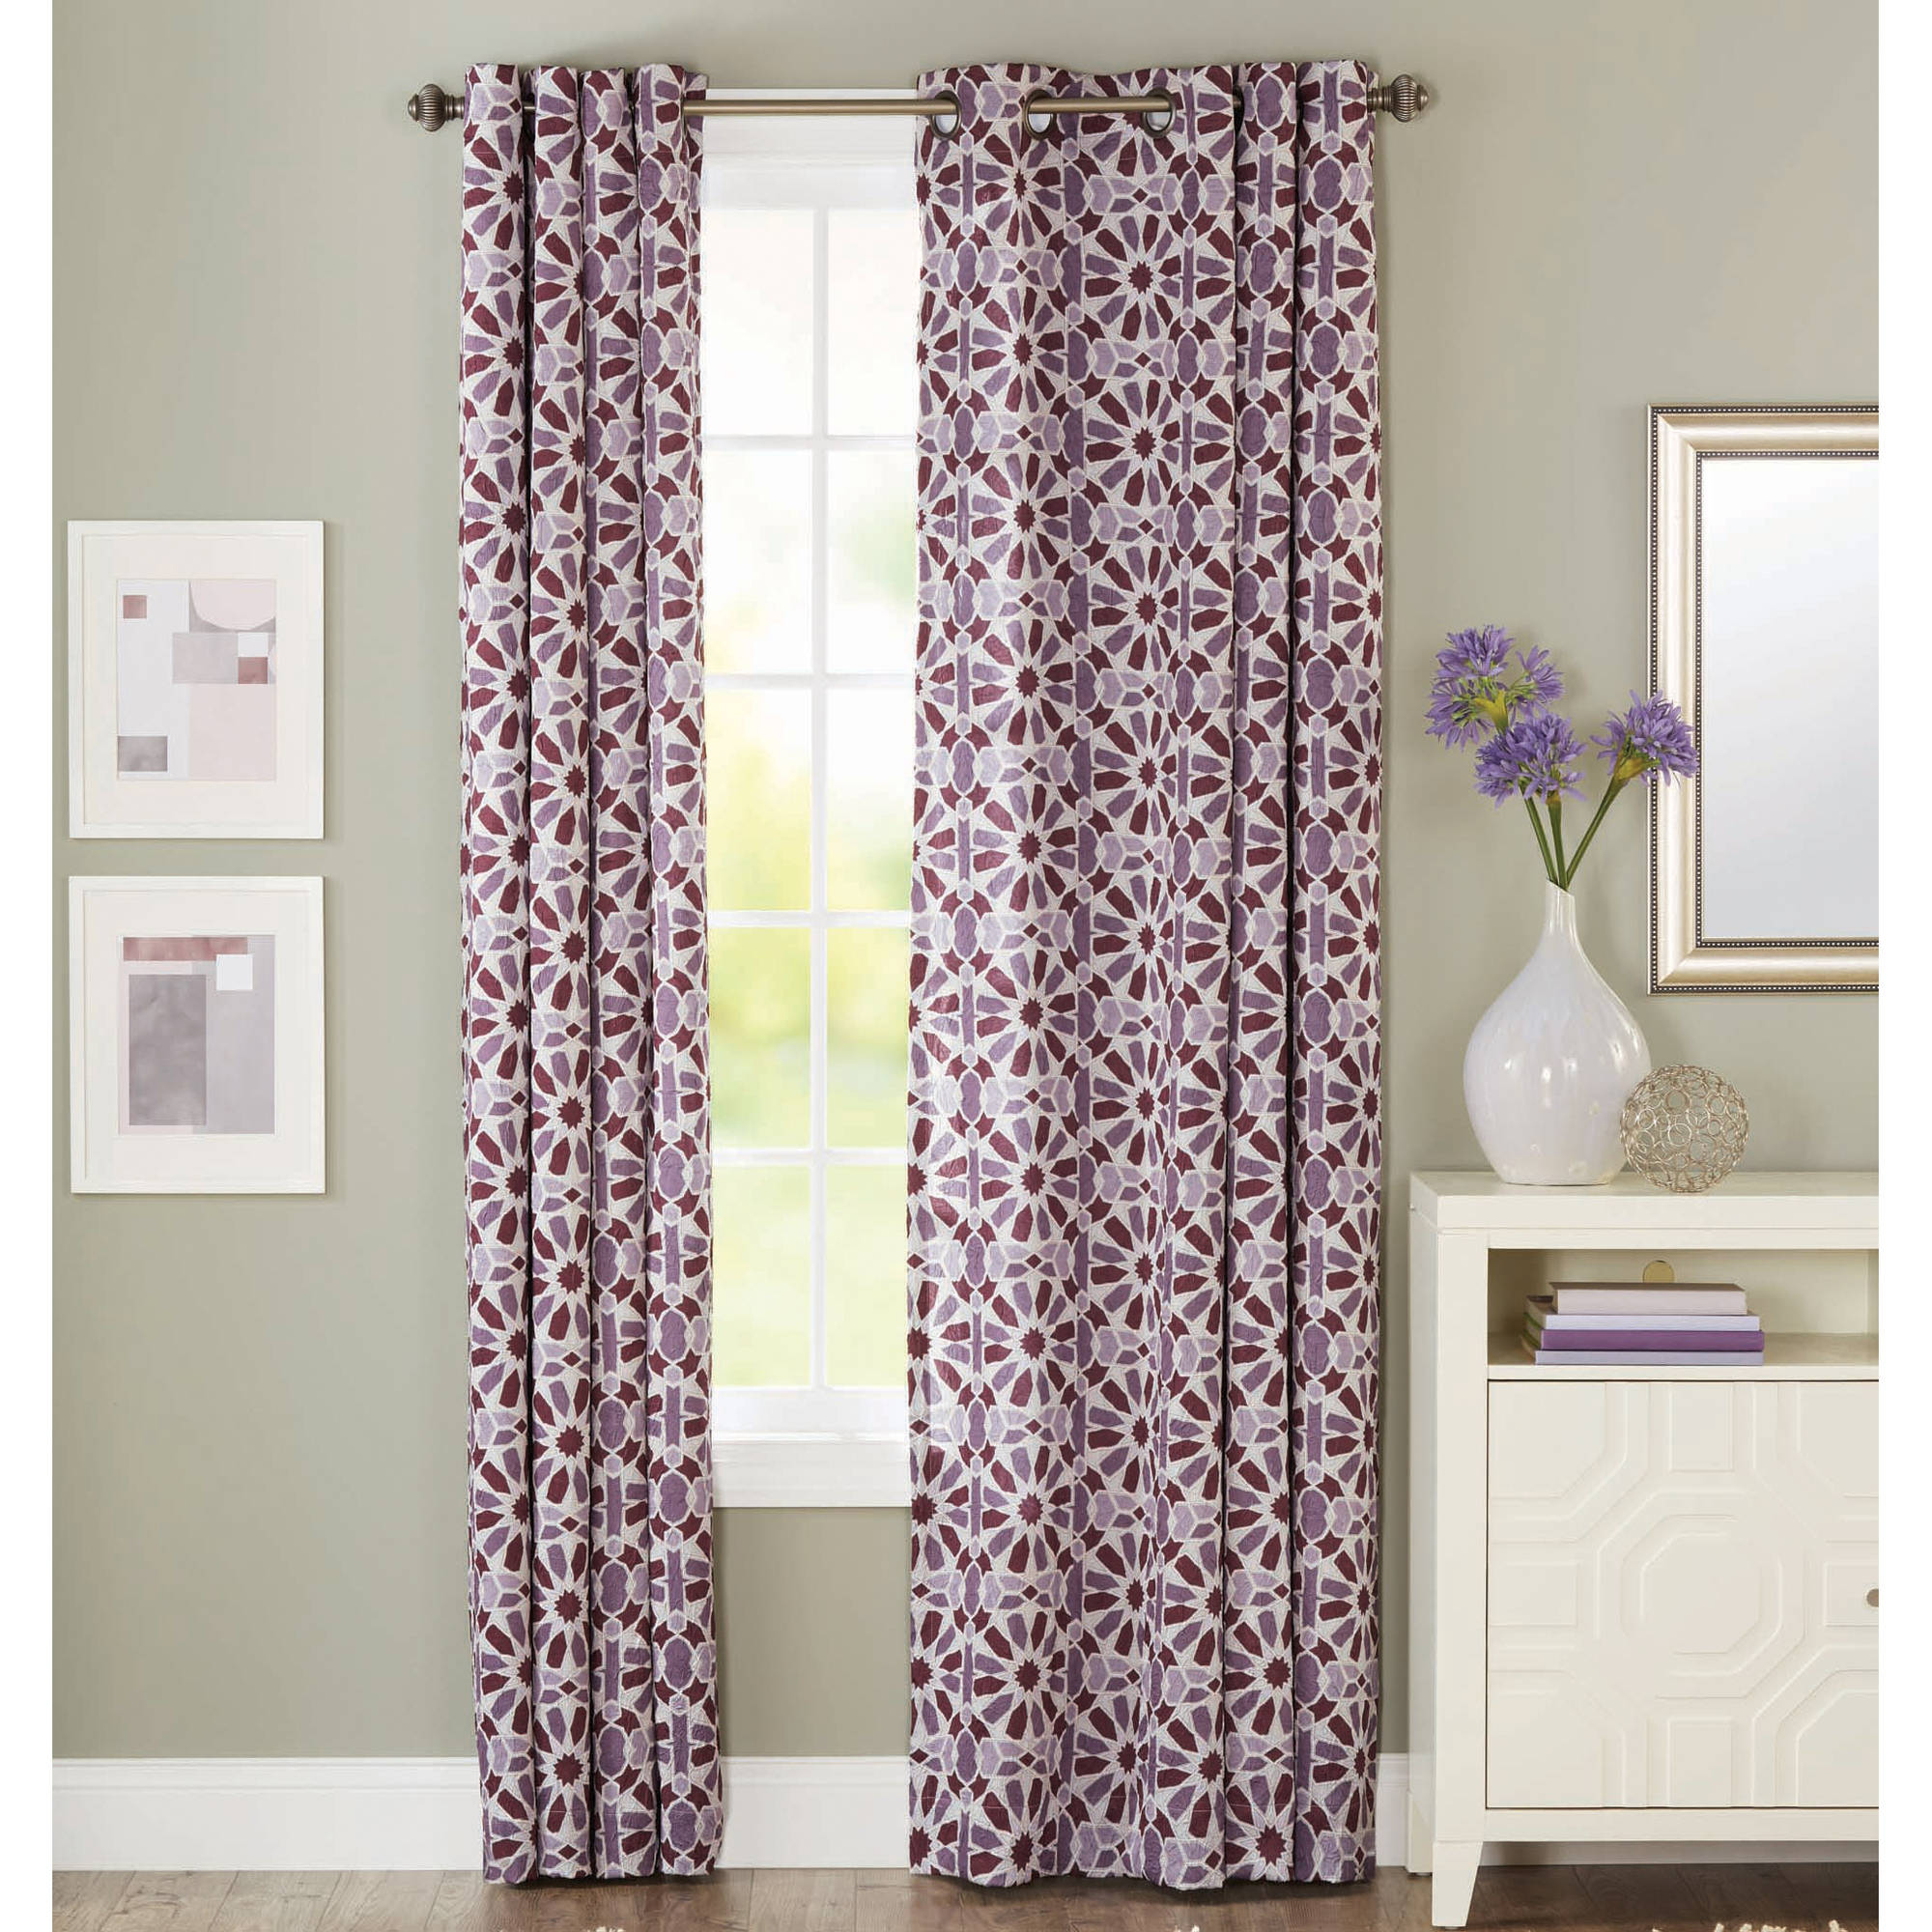 mainstays layered trellis room darkening curtain panel